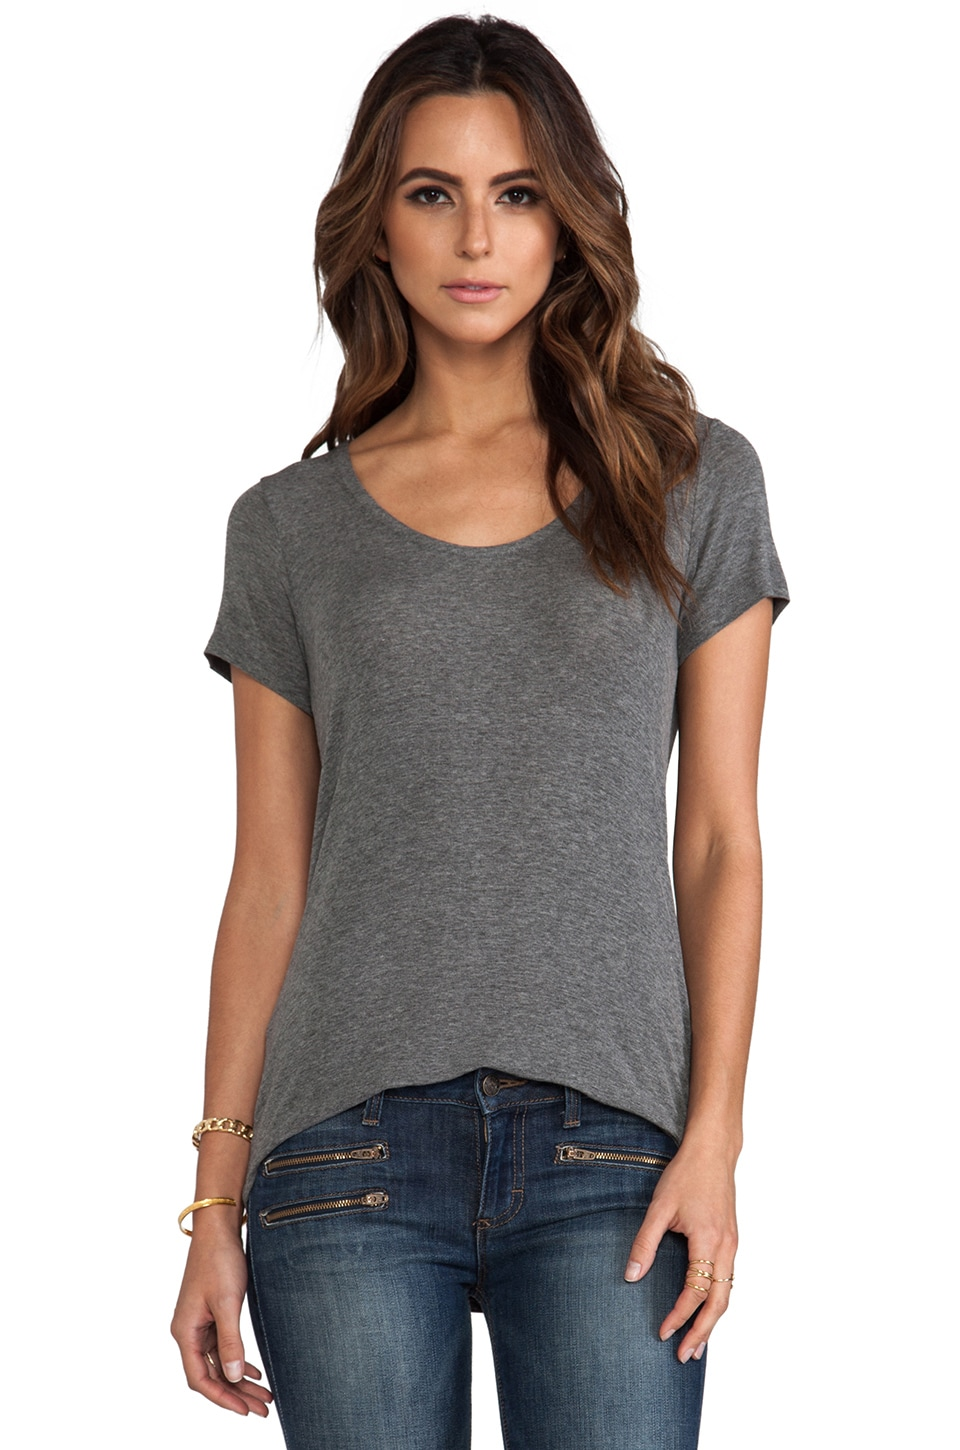 Splendid Drapey Lux Short Sleeve Tee in Steel